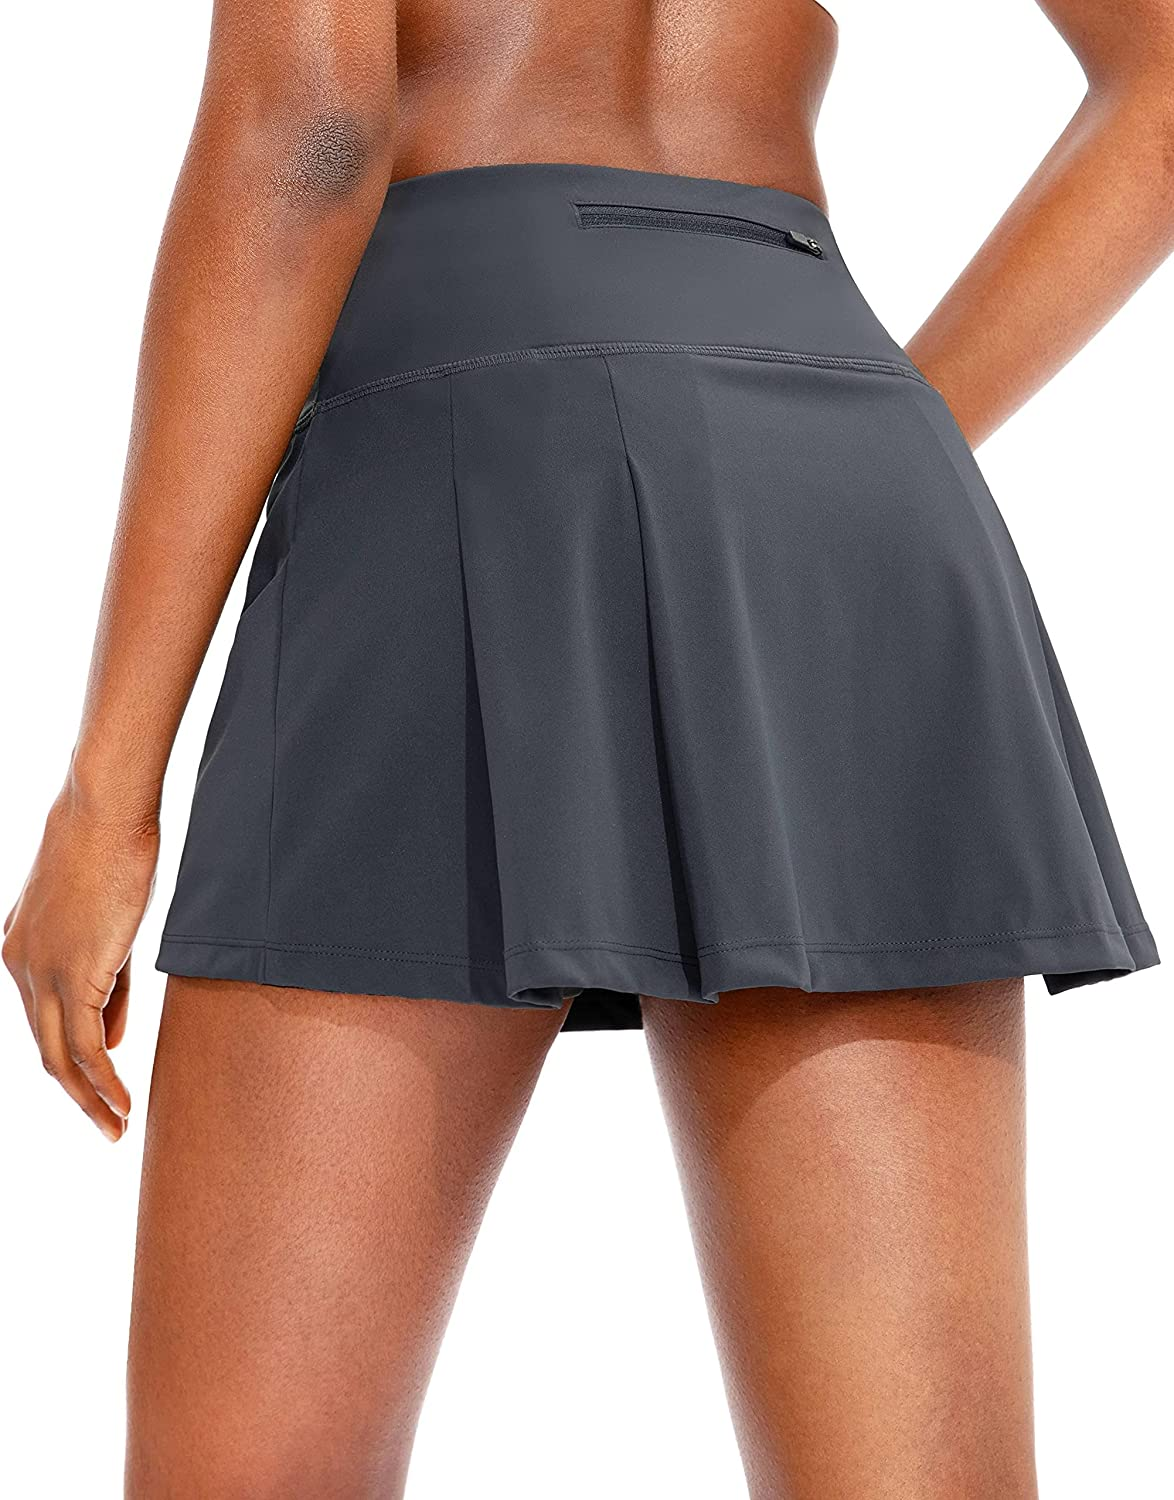 5 ☆ popular Soothfeel Pleated Tennis Skirt for Hi Women's 67% OFF of fixed price Women with Pockets